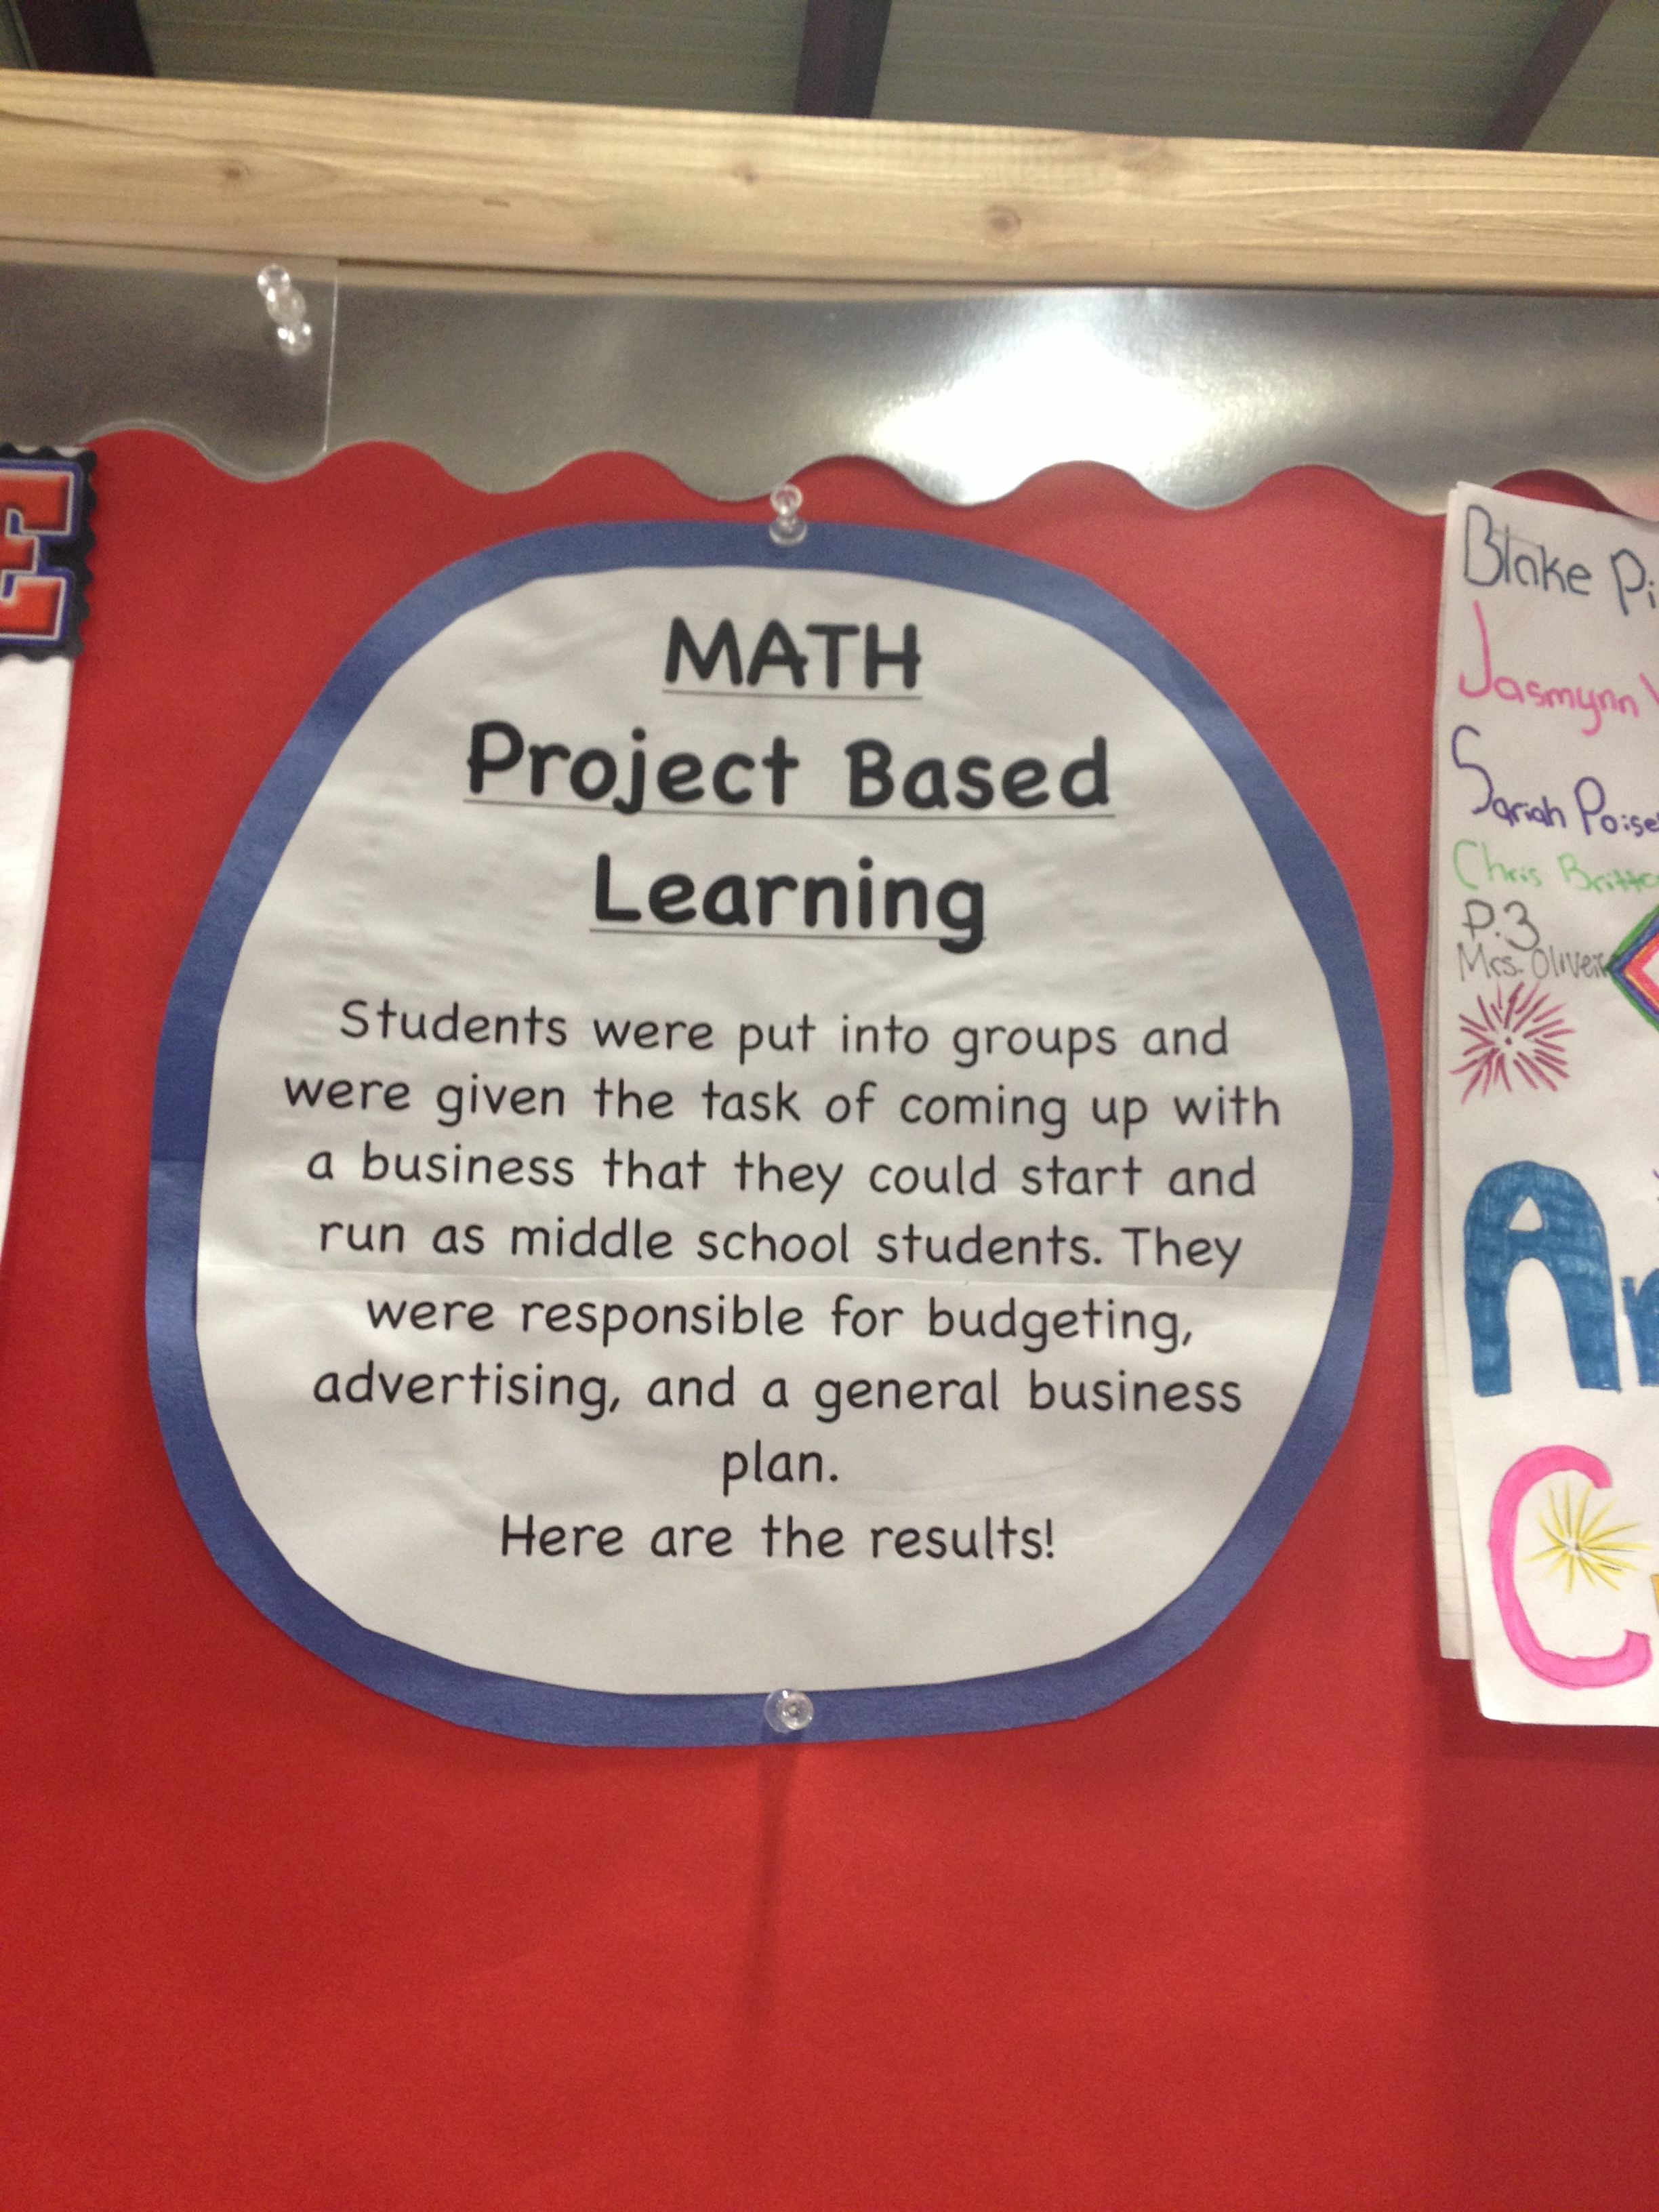 Project-based learning in math. A description of a project completed by a middle school math class.